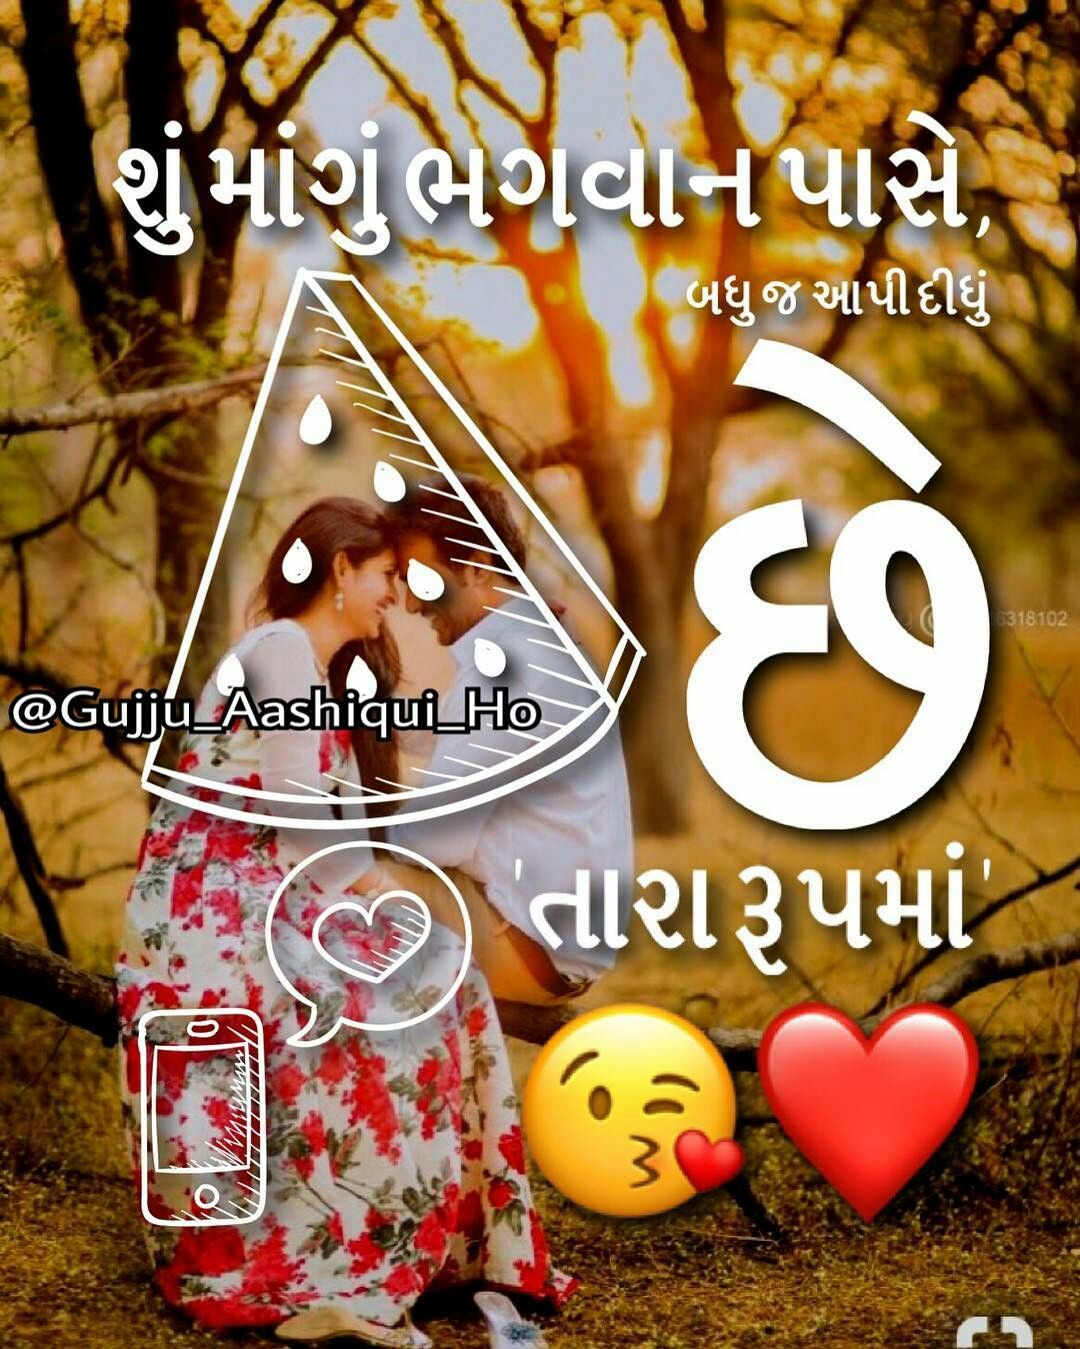 Pin by Shilpa Chavda on Gujrati Birthday msgs, Picture